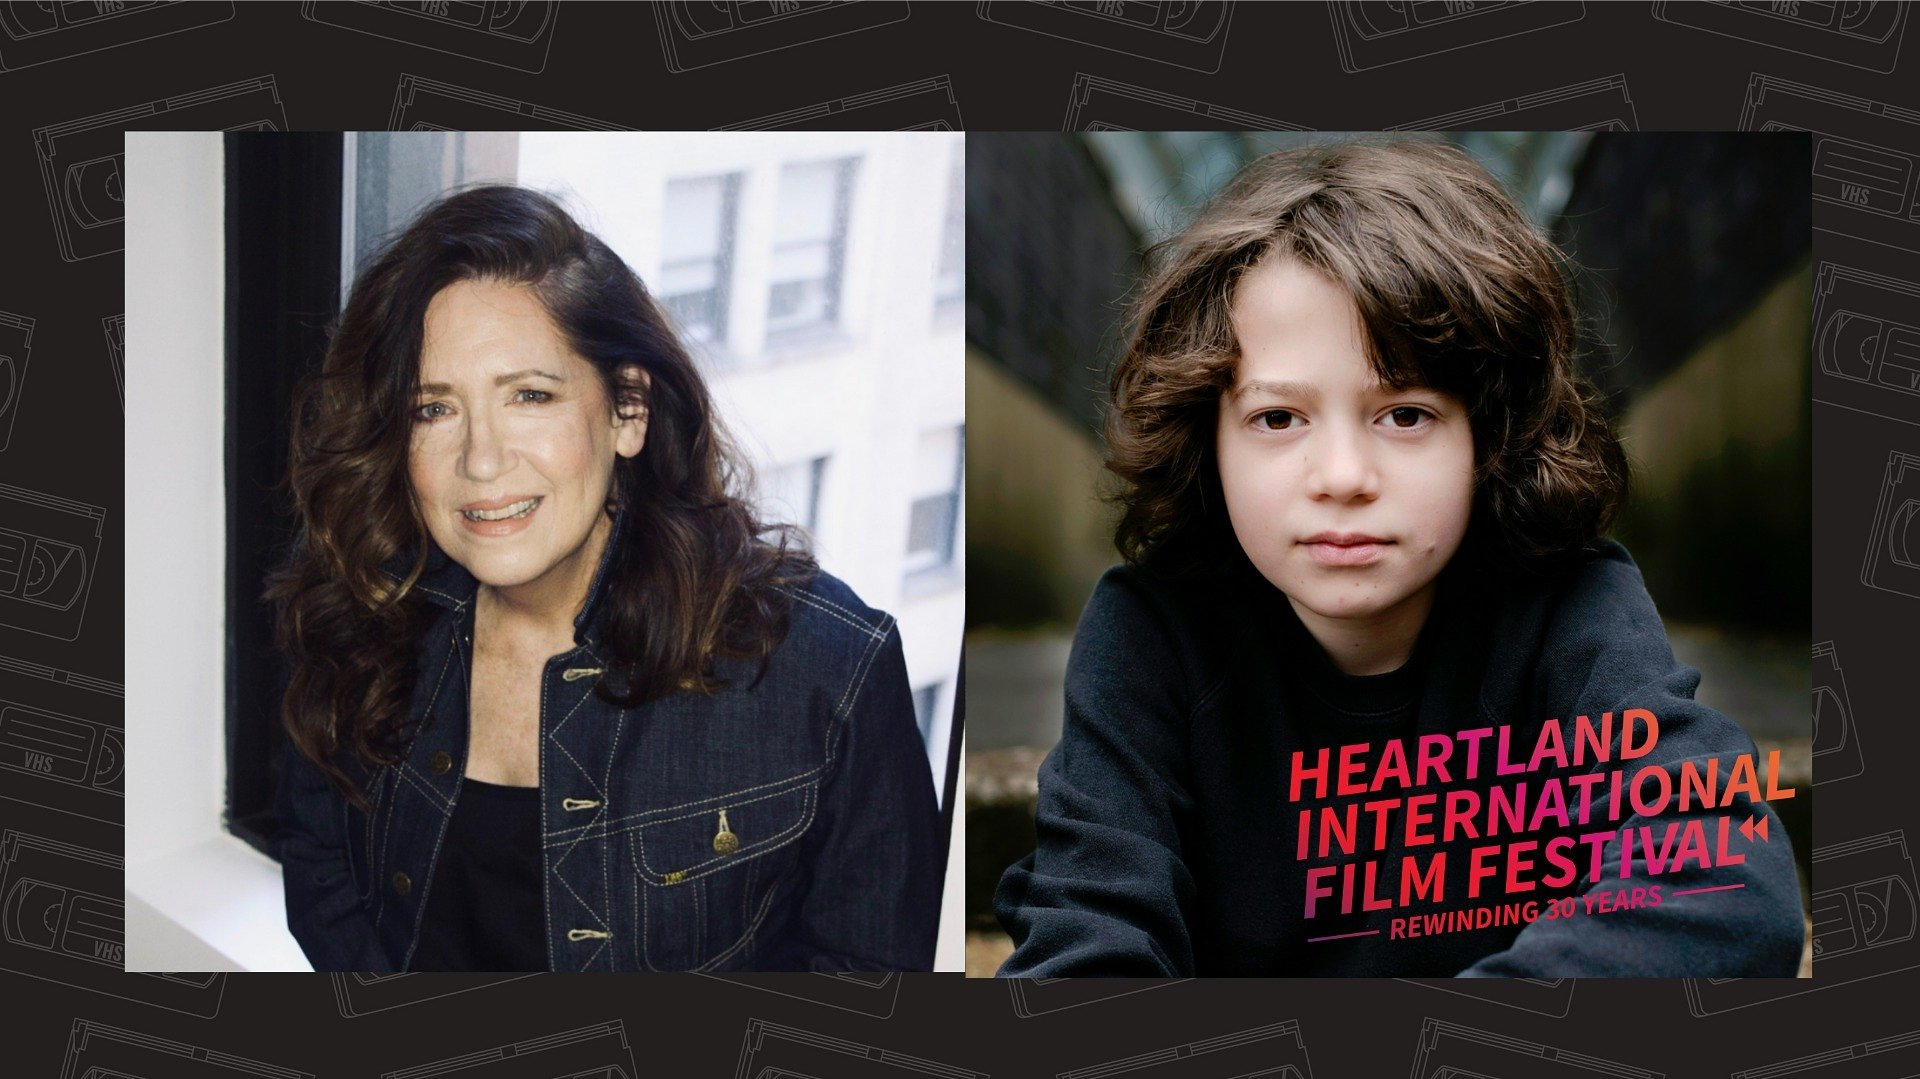 HEARTLAND INTERNATIONAL FILM FESTIVAL TO HONOR ANN DOWD WITH LIFETIME ACHIEVEMENT, WOODY NORMAN WITH RISING STAR AWARDS AT 30TH ANNIVERSARY EVENT